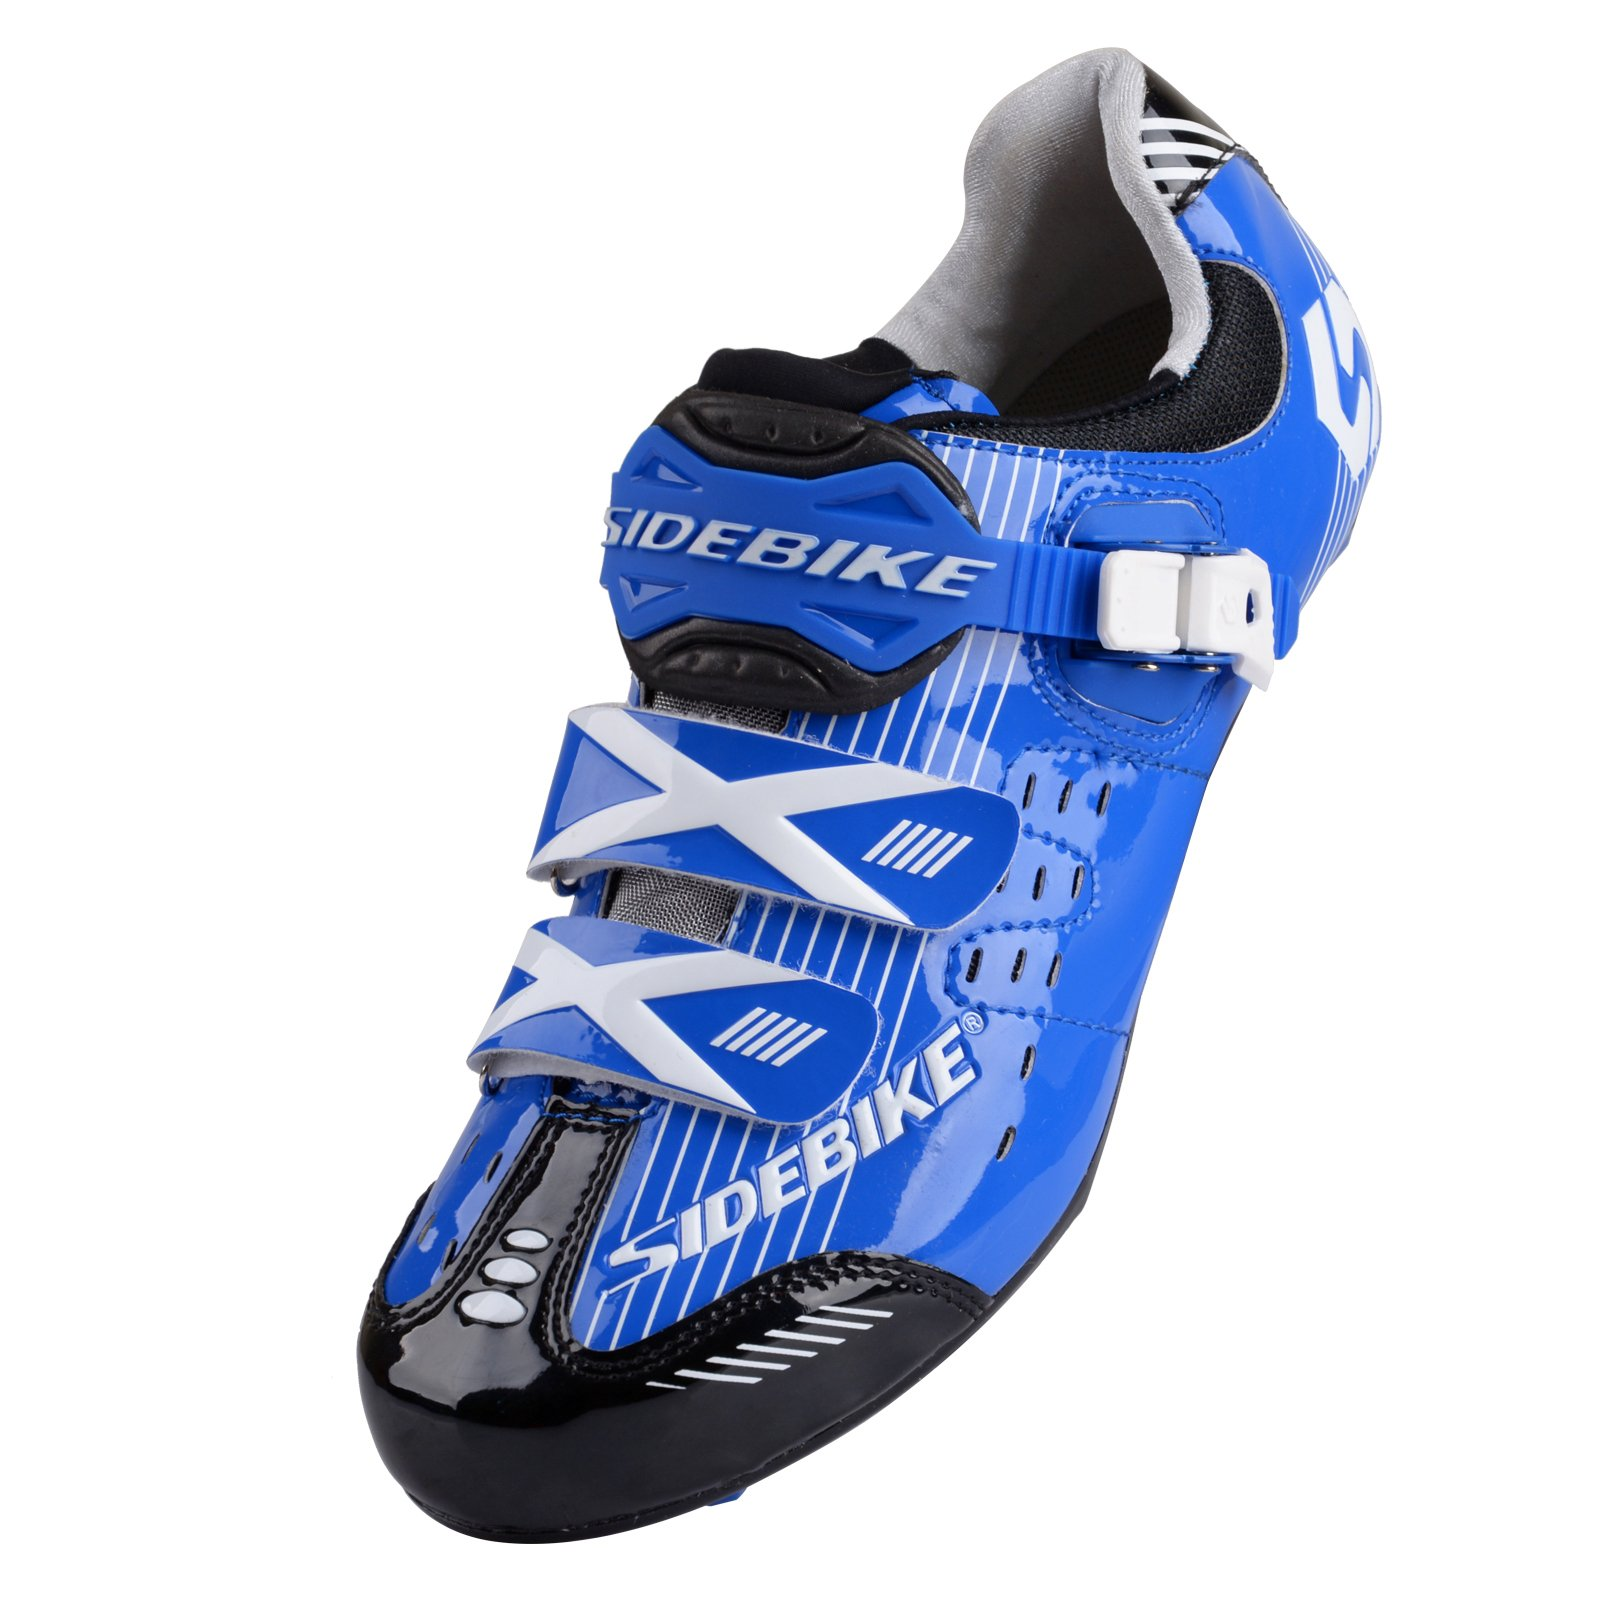 Smartodoors Women's Men's All Road Cycling Shoes for Road and MTB(RD-Blue Black,US9)